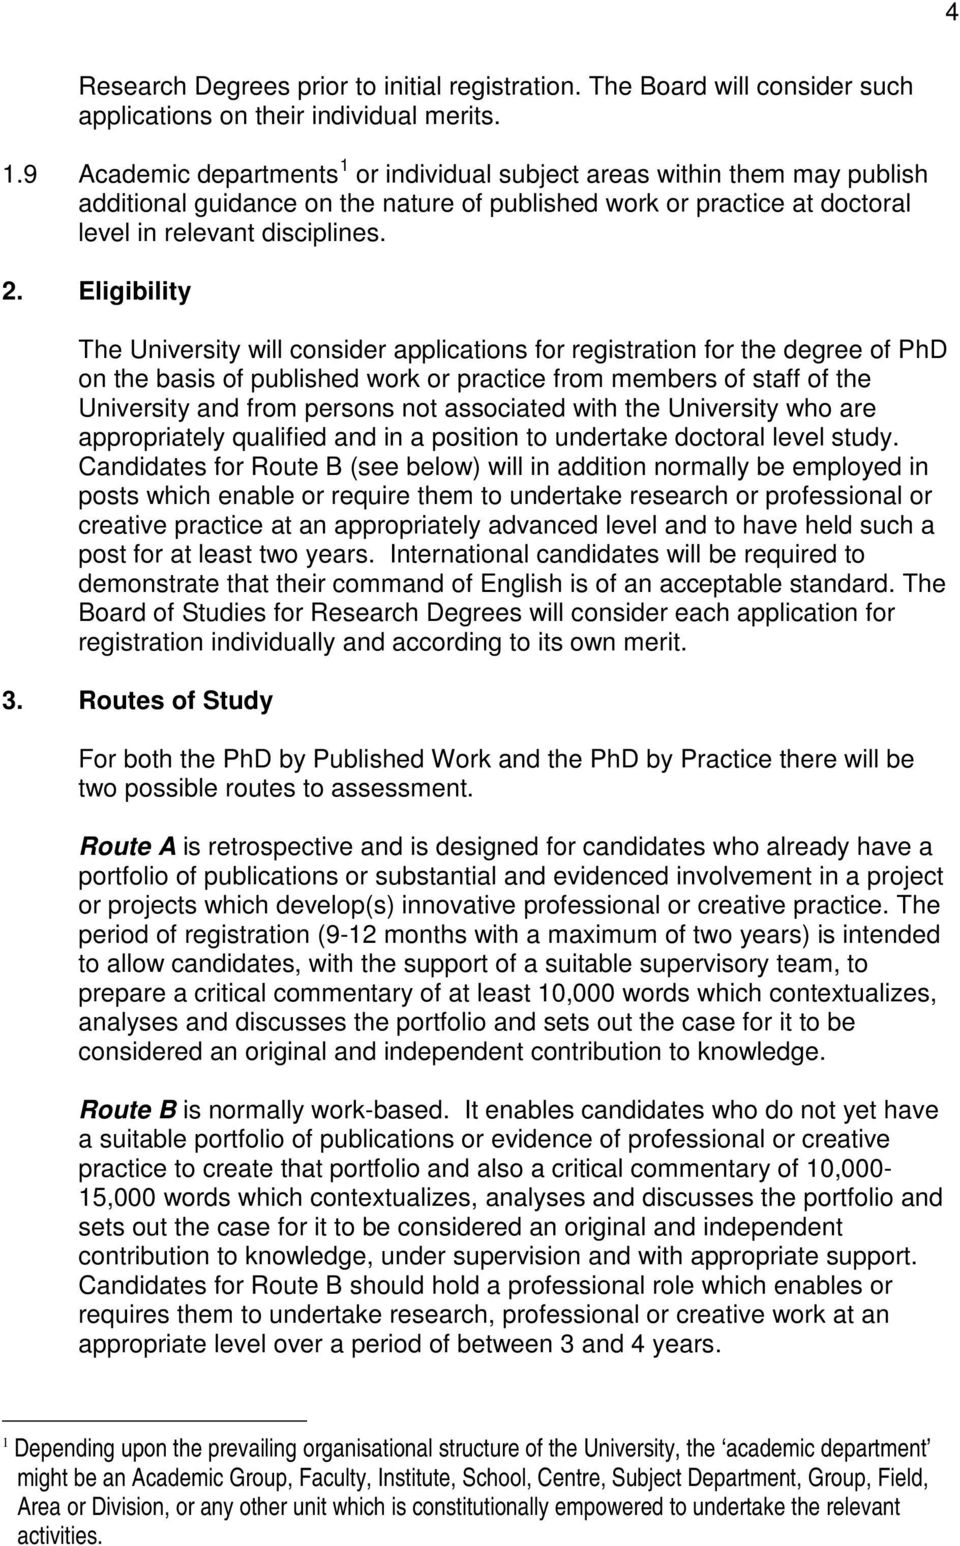 Eligibility The University will consider applications for registration for the degree of PhD on the basis of published work or practice from members of staff of the University and from persons not